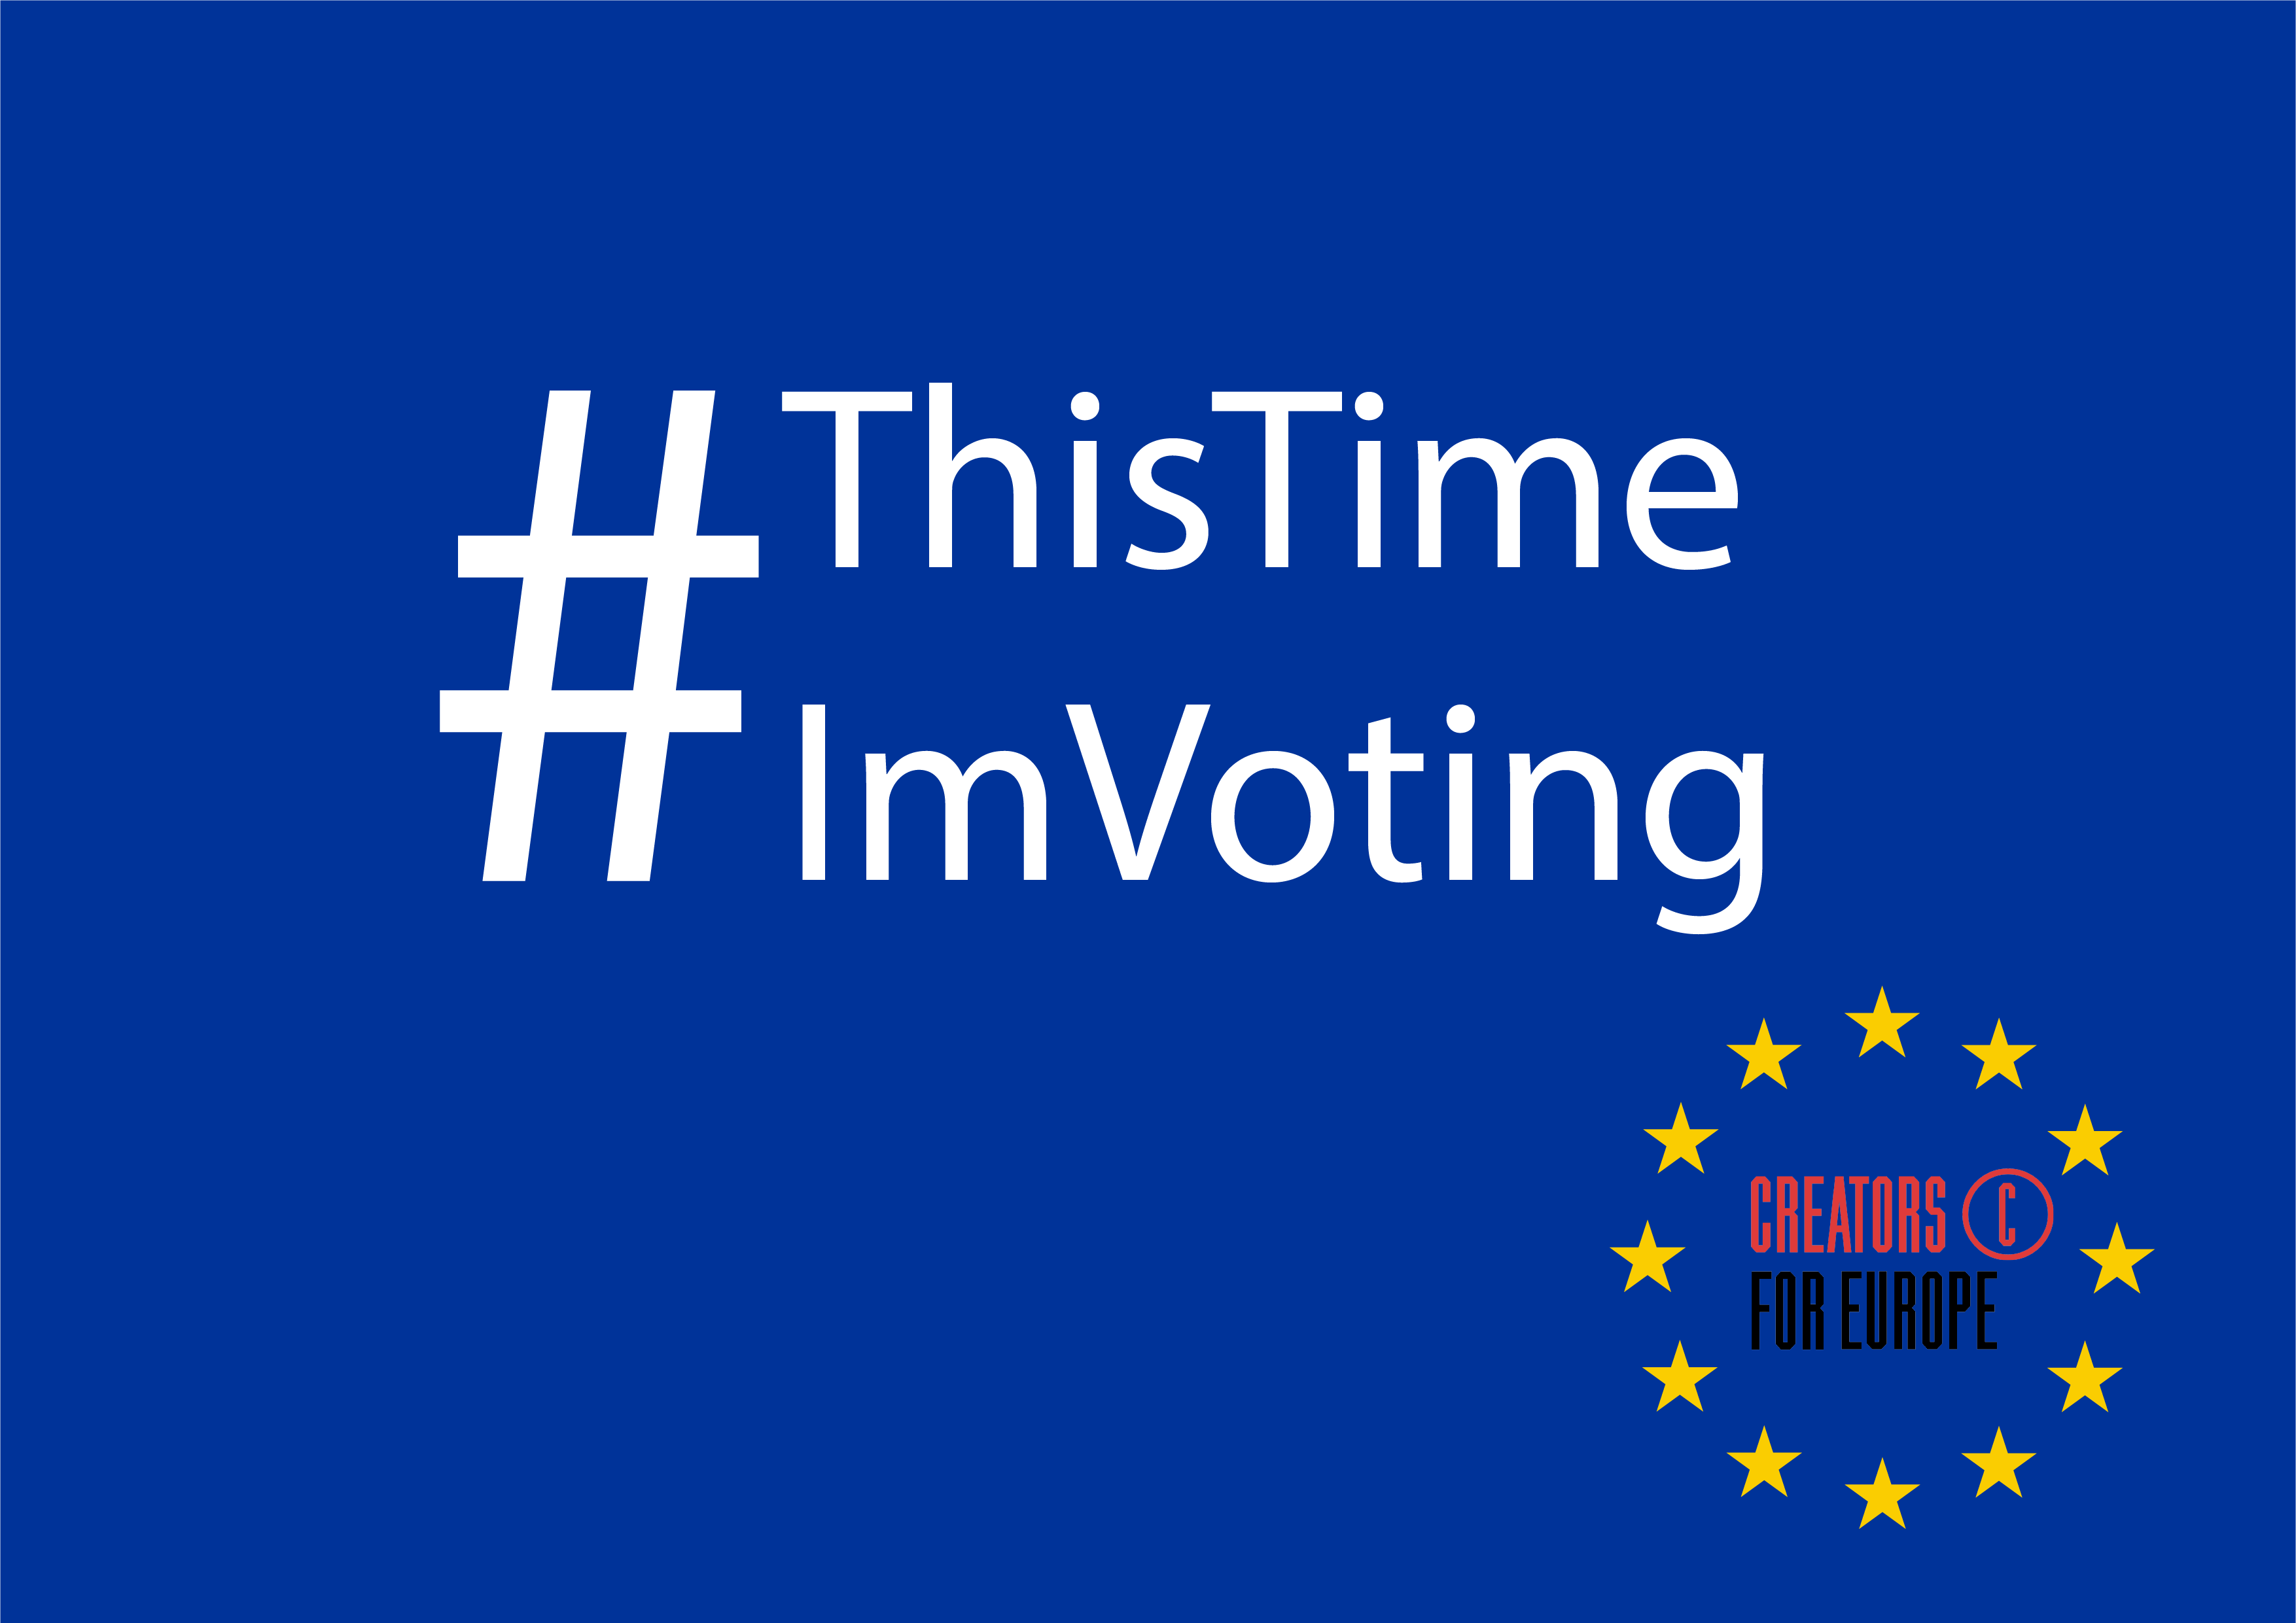 European Creators Engage In #ThisTimeImVoting Campaign To Boost EU Election Turnout